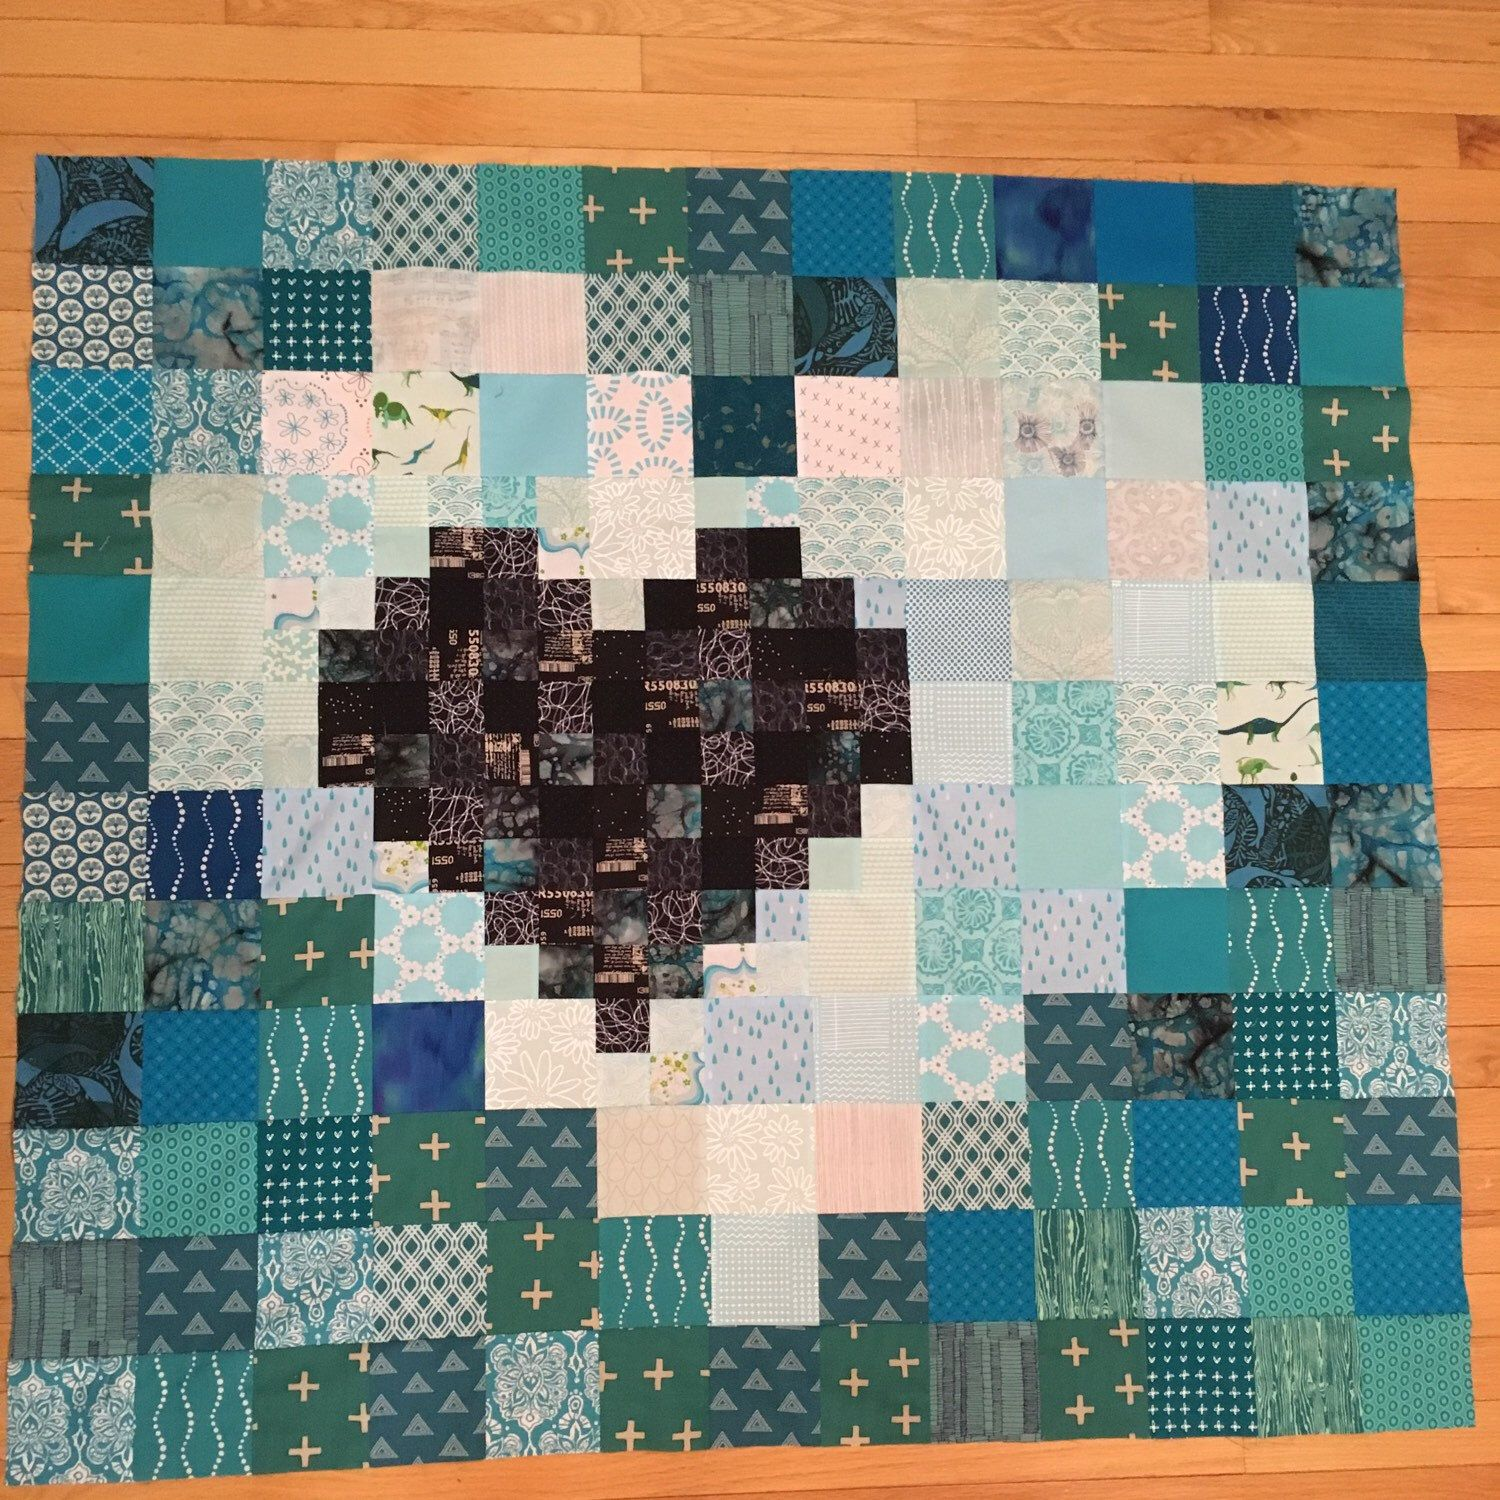 A custom Pixel Heart quilt that I am loving!